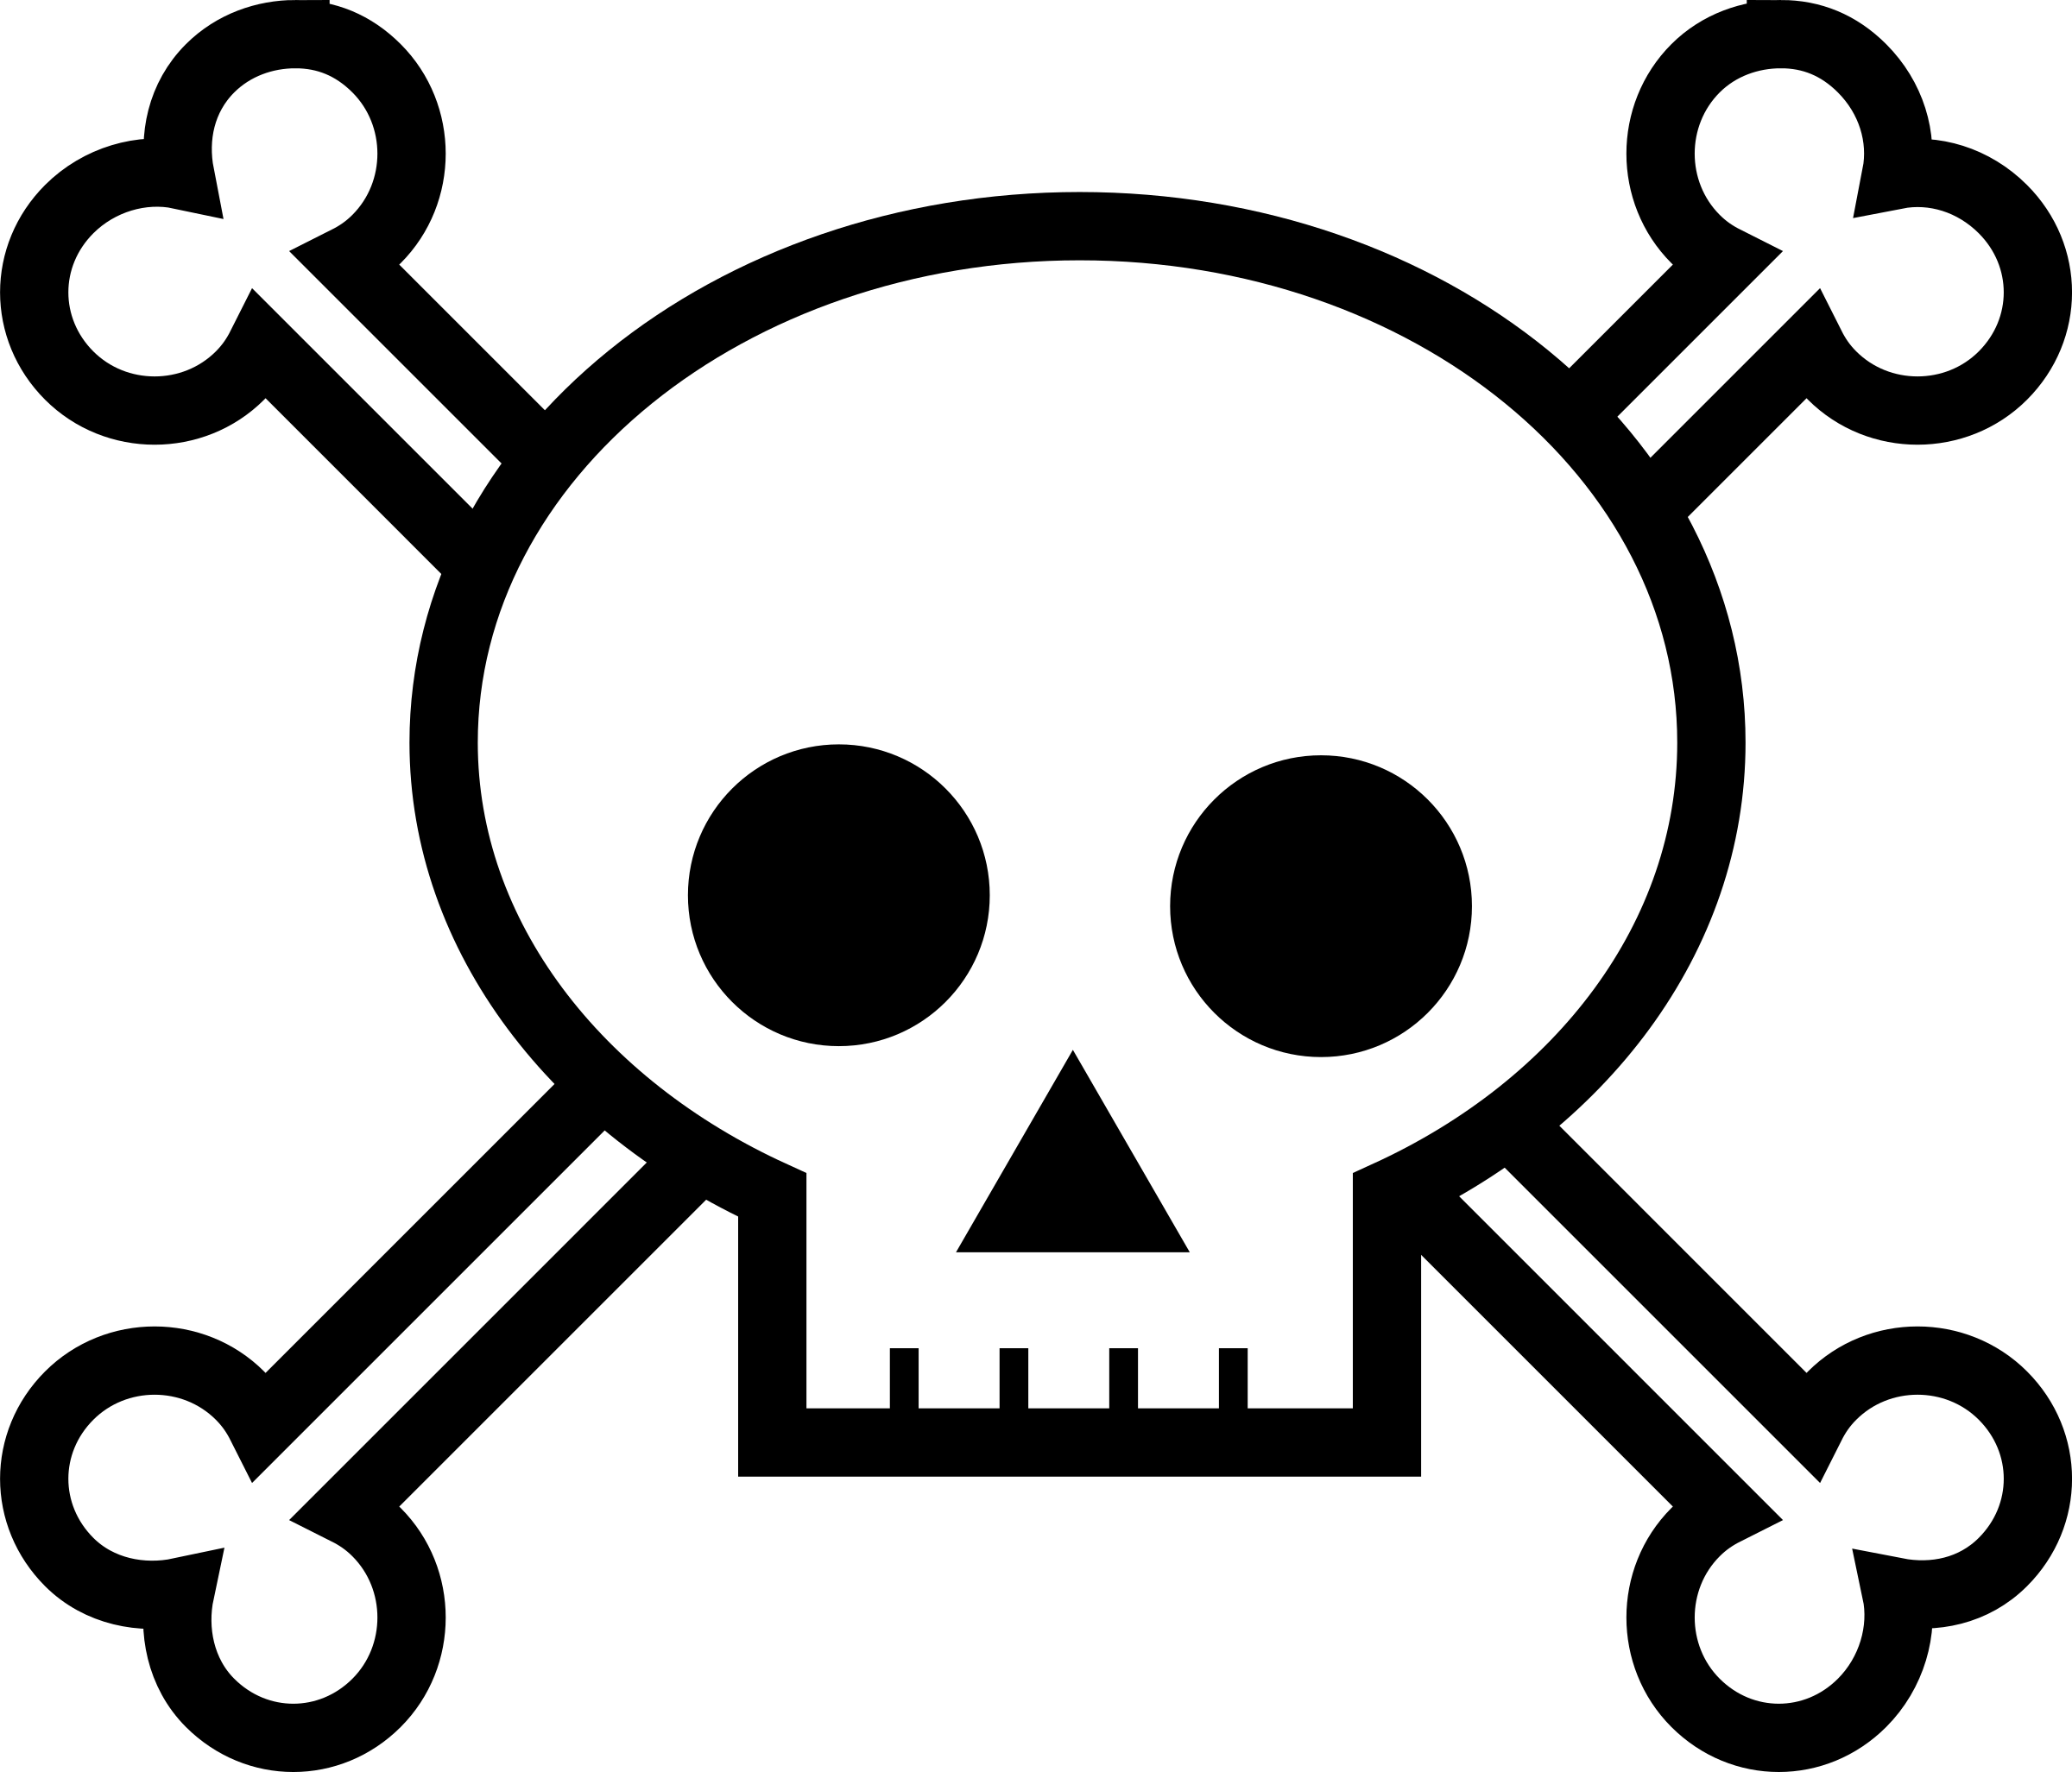 Skull and cross bones clipart svg freeuse download Clipart - Skull and Crossbones svg freeuse download